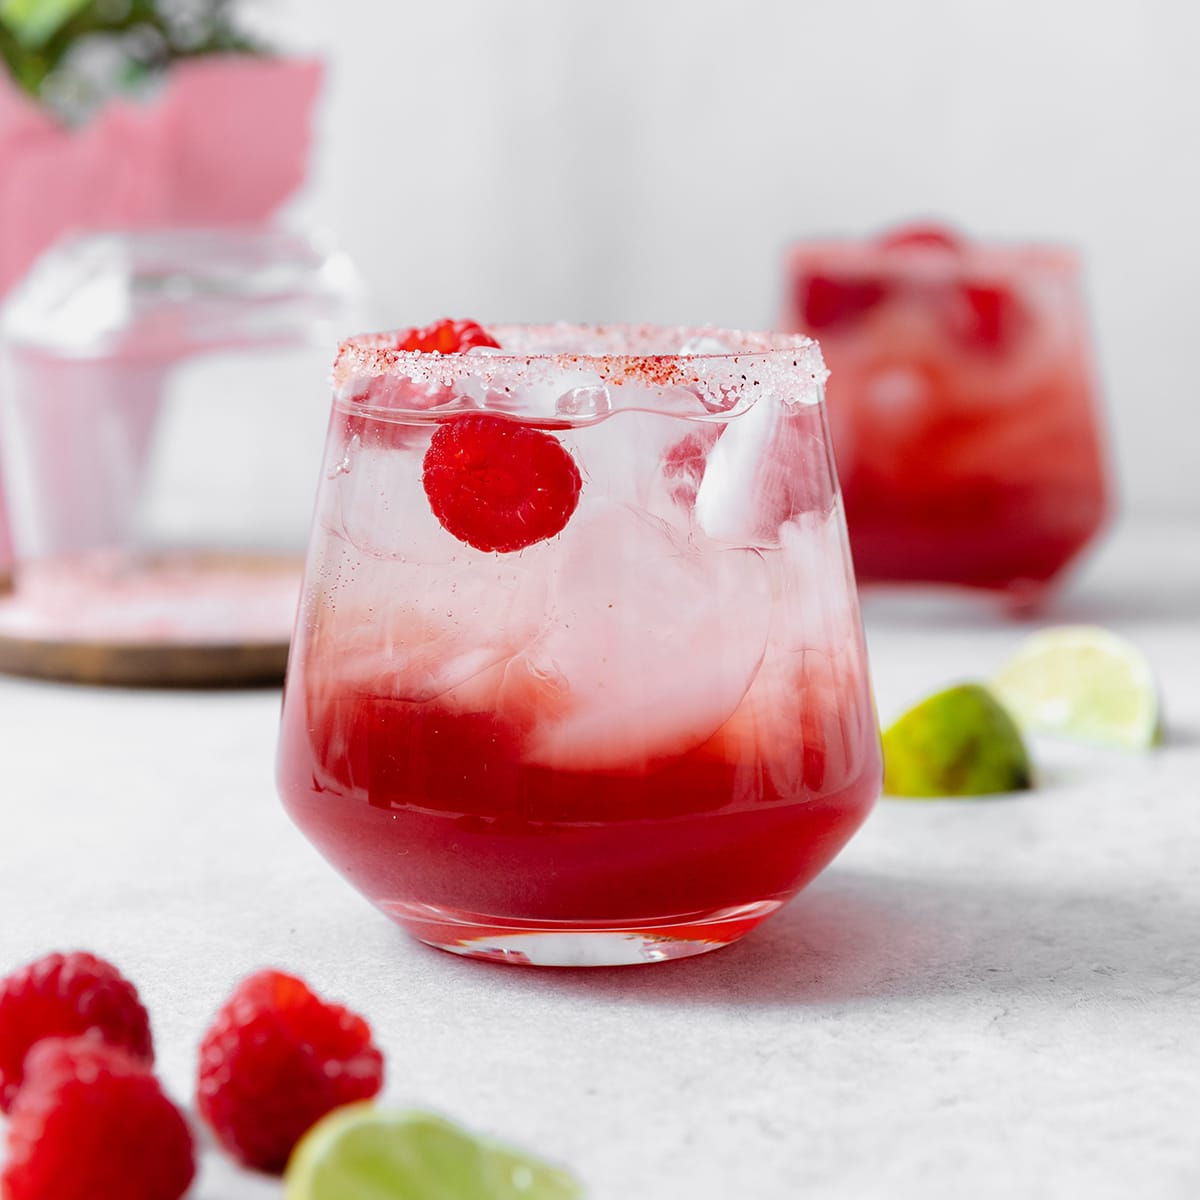 Raspberry margarita shown in a double old-fashioned glass with ice and fresh raspberries. On grey background.